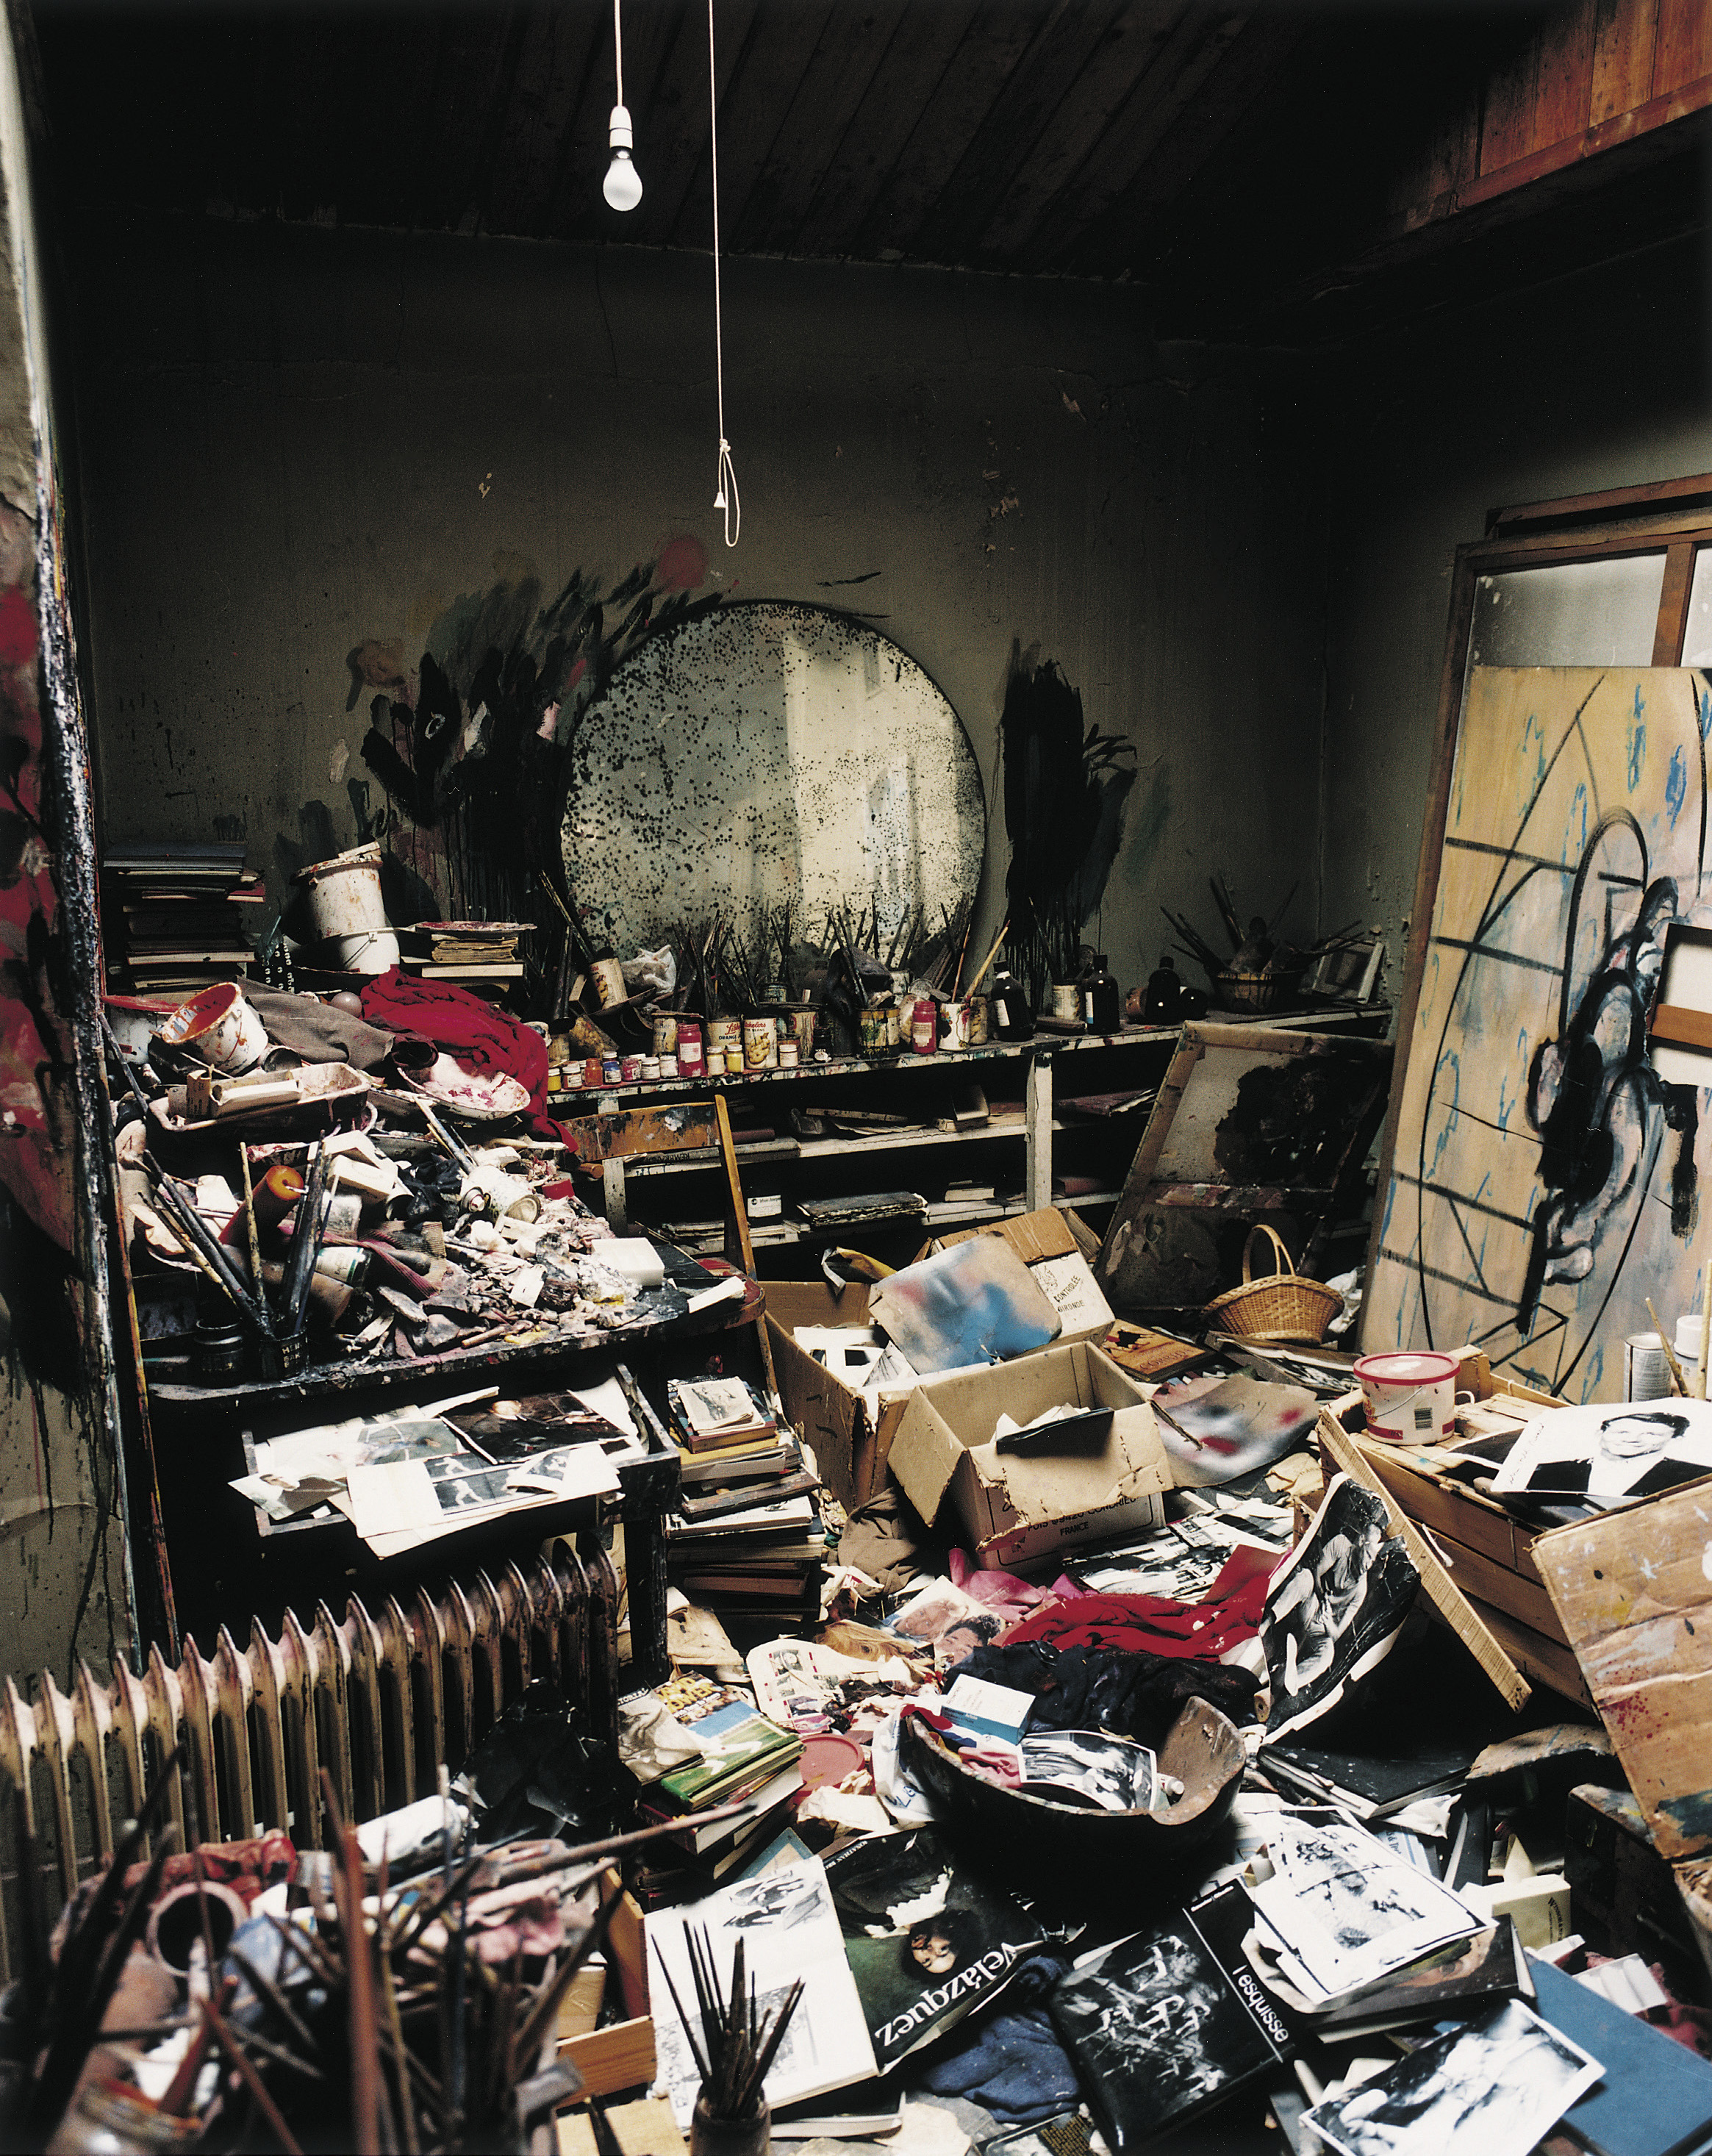 Francis Bacon's 7 Reece Mews Studio, Photograph by Perry Ogden